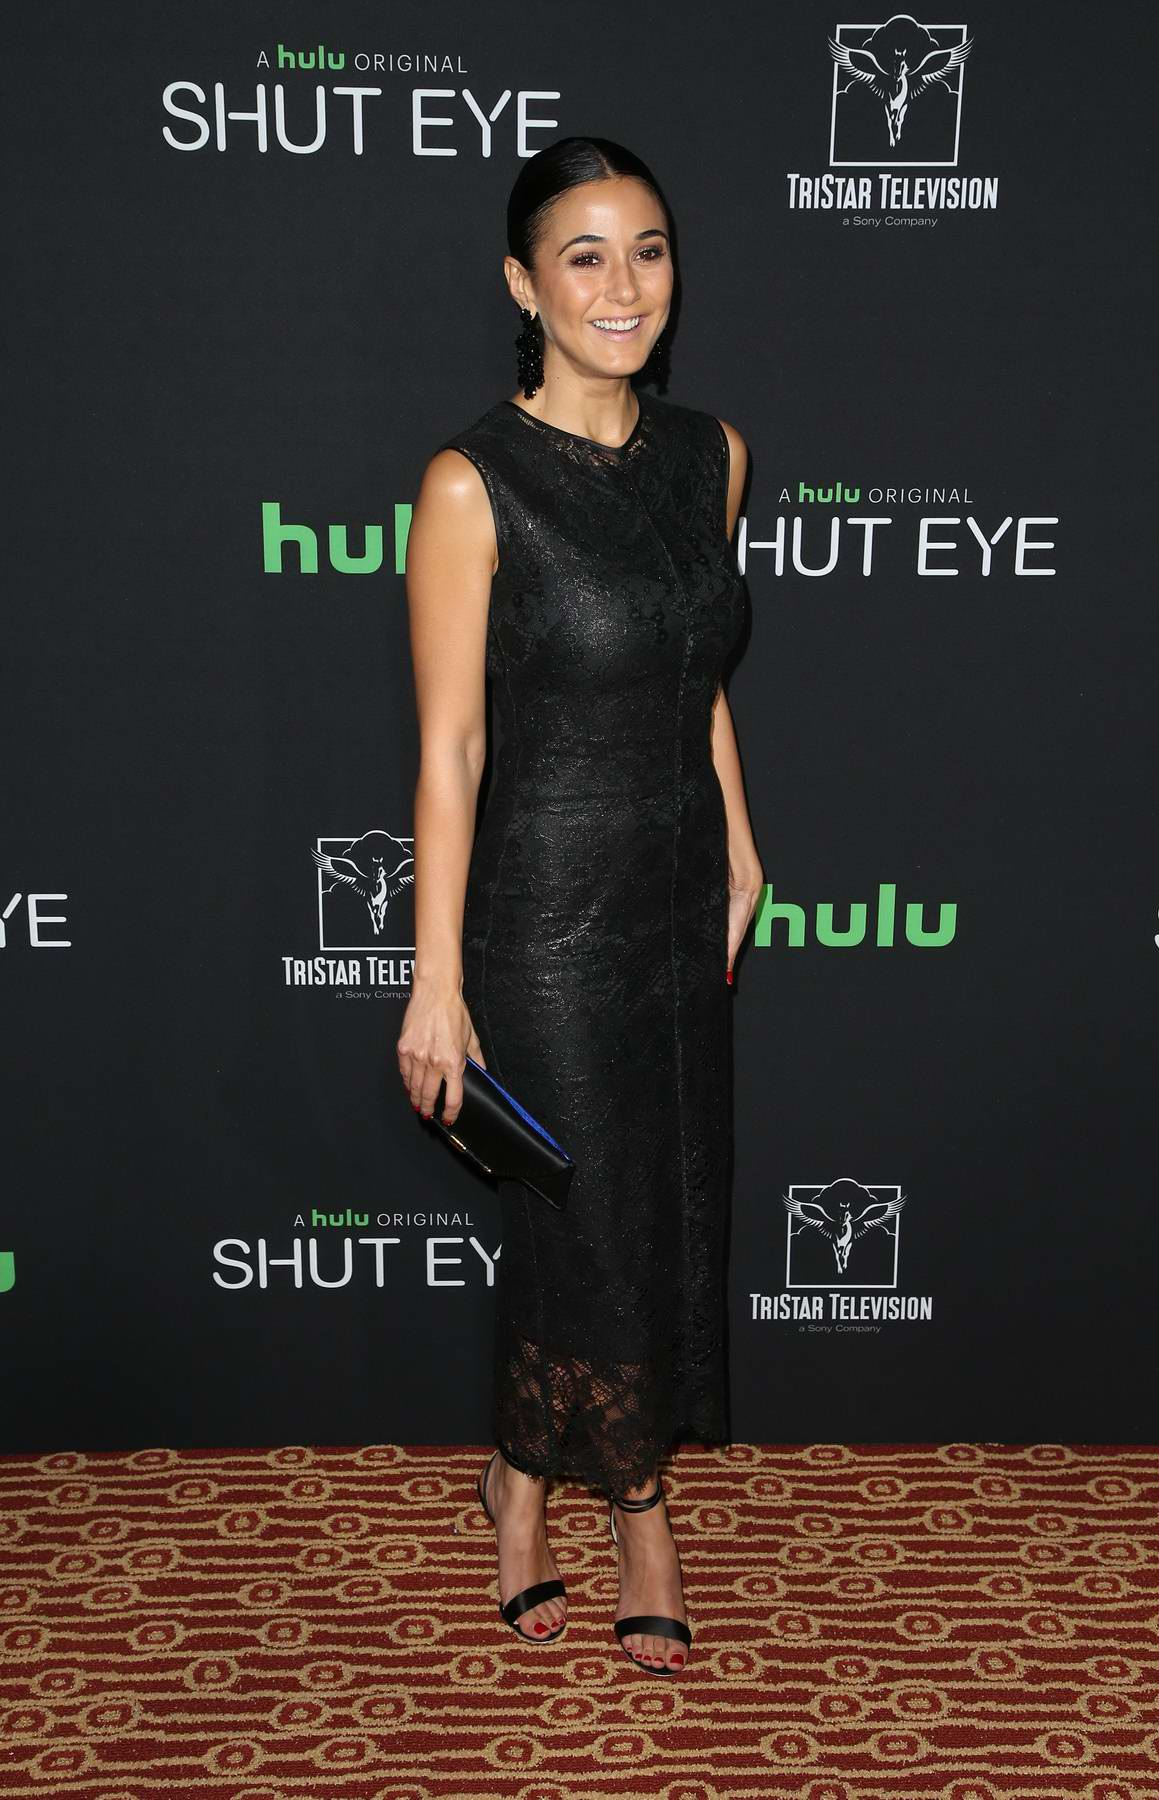 Emmanuelle Chriqui attends the premire of TV show 'Shut Eye' in Los Angeles